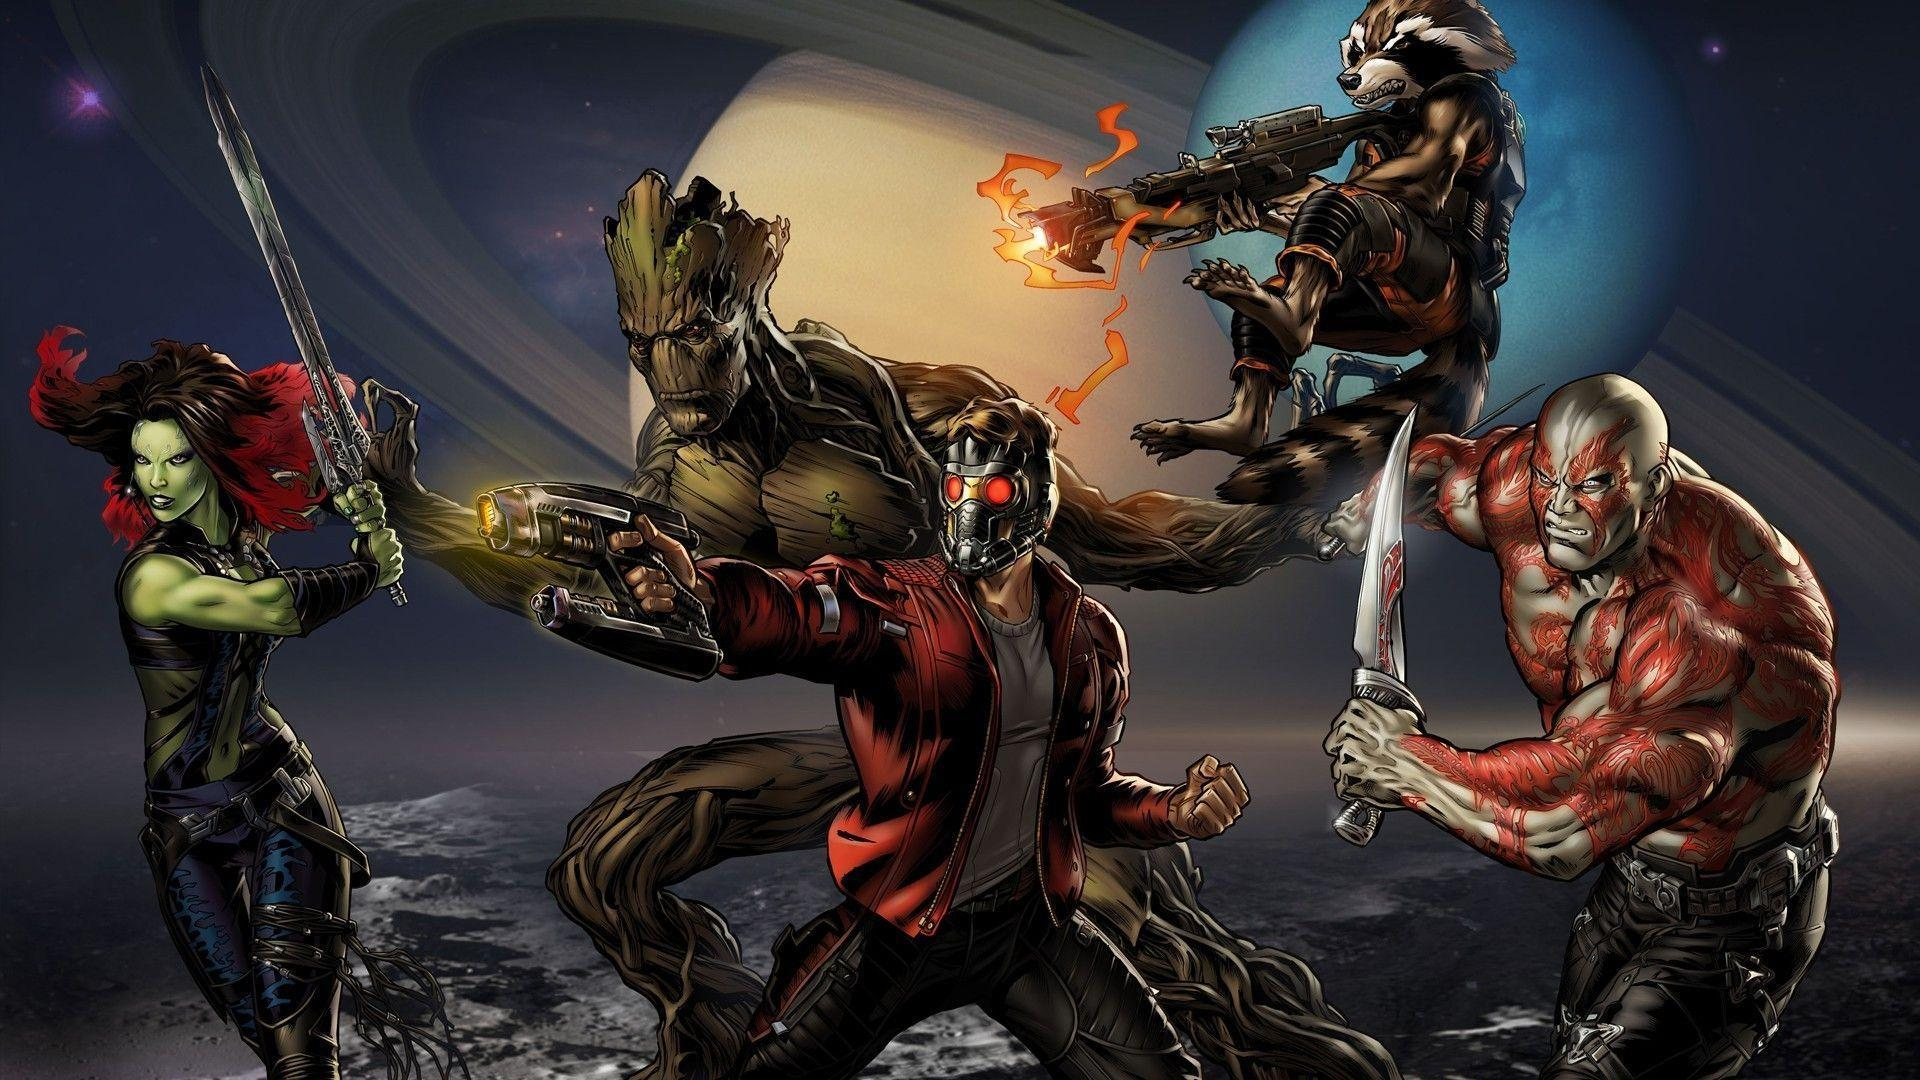 Star Lord And Rocket Raccoon By Timothygreenii On Deviantart: Star Lord Wallpapers